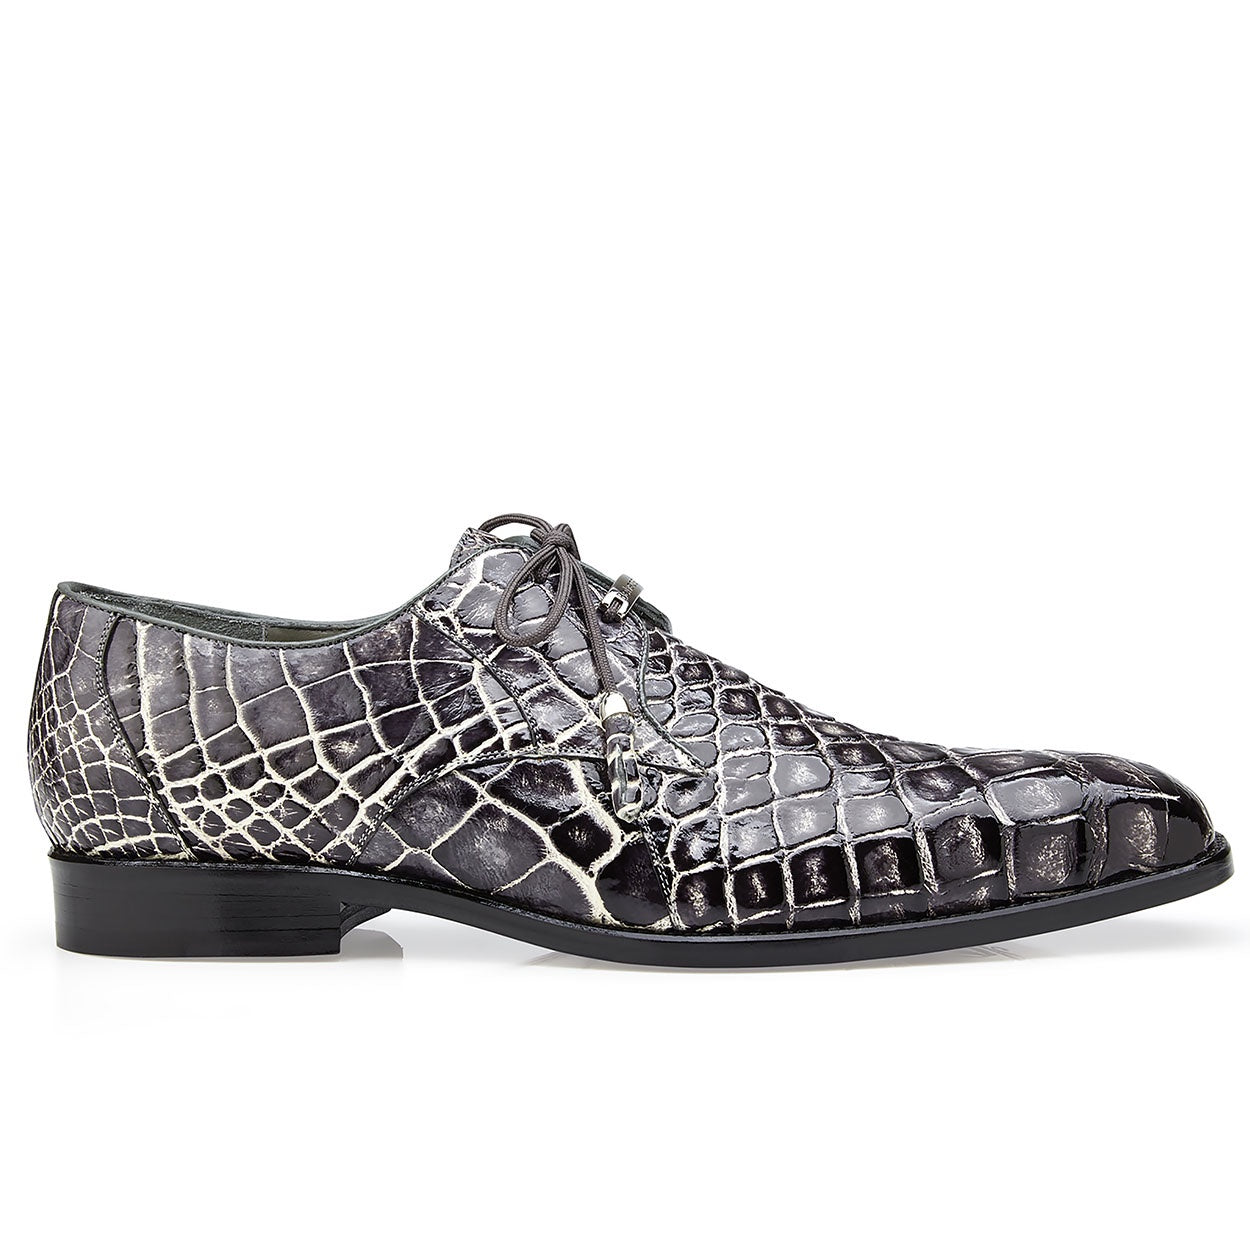 Belvedere Alfred Alligator Skin Lace Up Oxford - Black Rust - Dapperfam.com